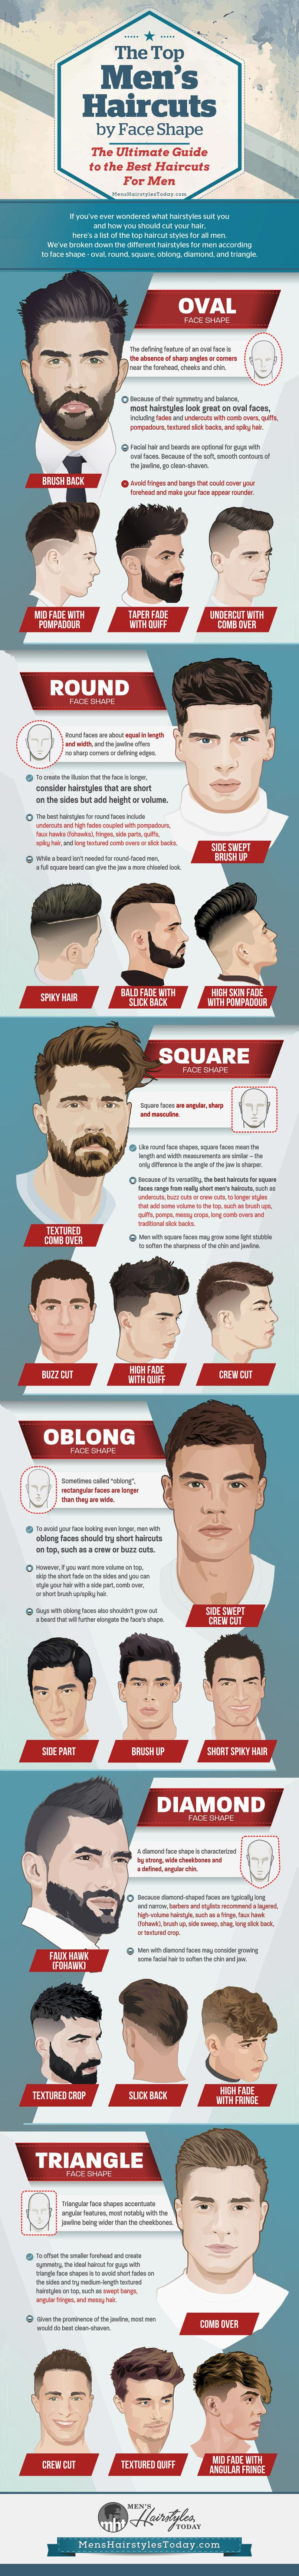 Oblong face haircut men best menus hairstyle according to face shape infographic  face